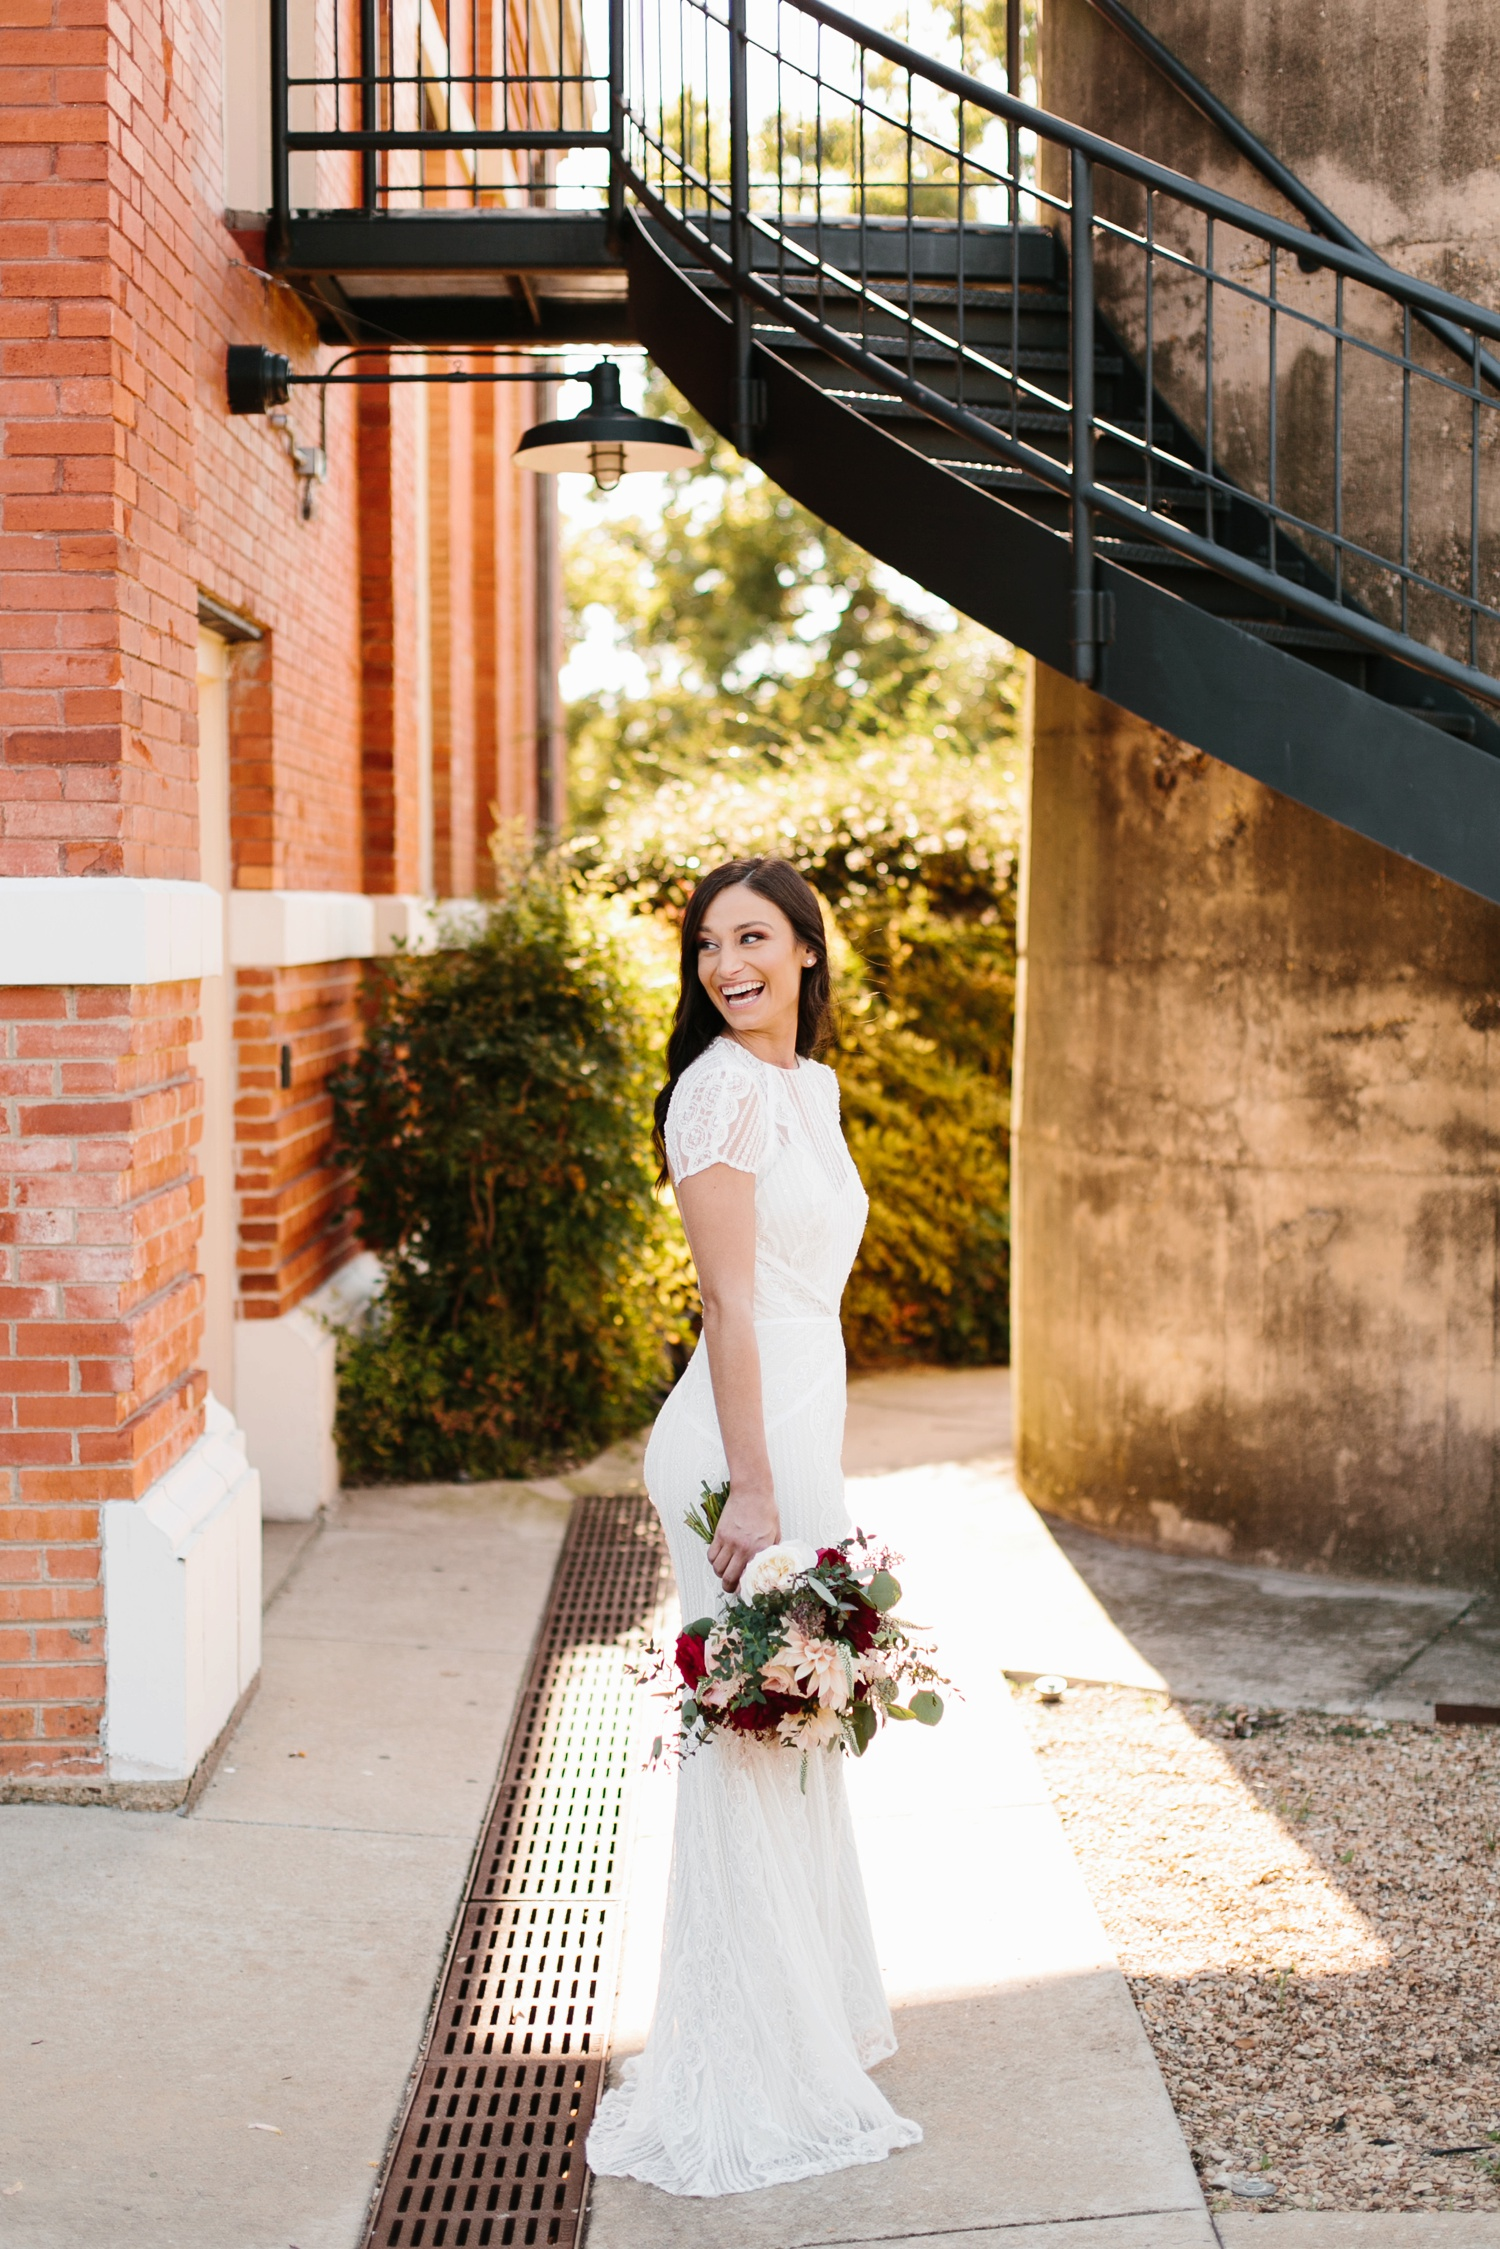 Kadee + Tyler | a raw, emotional wedding at the Filter Building on White Rock Lake in Dallas, TX by North Texas Wedding Photographer, Rachel Meagan Photography 103